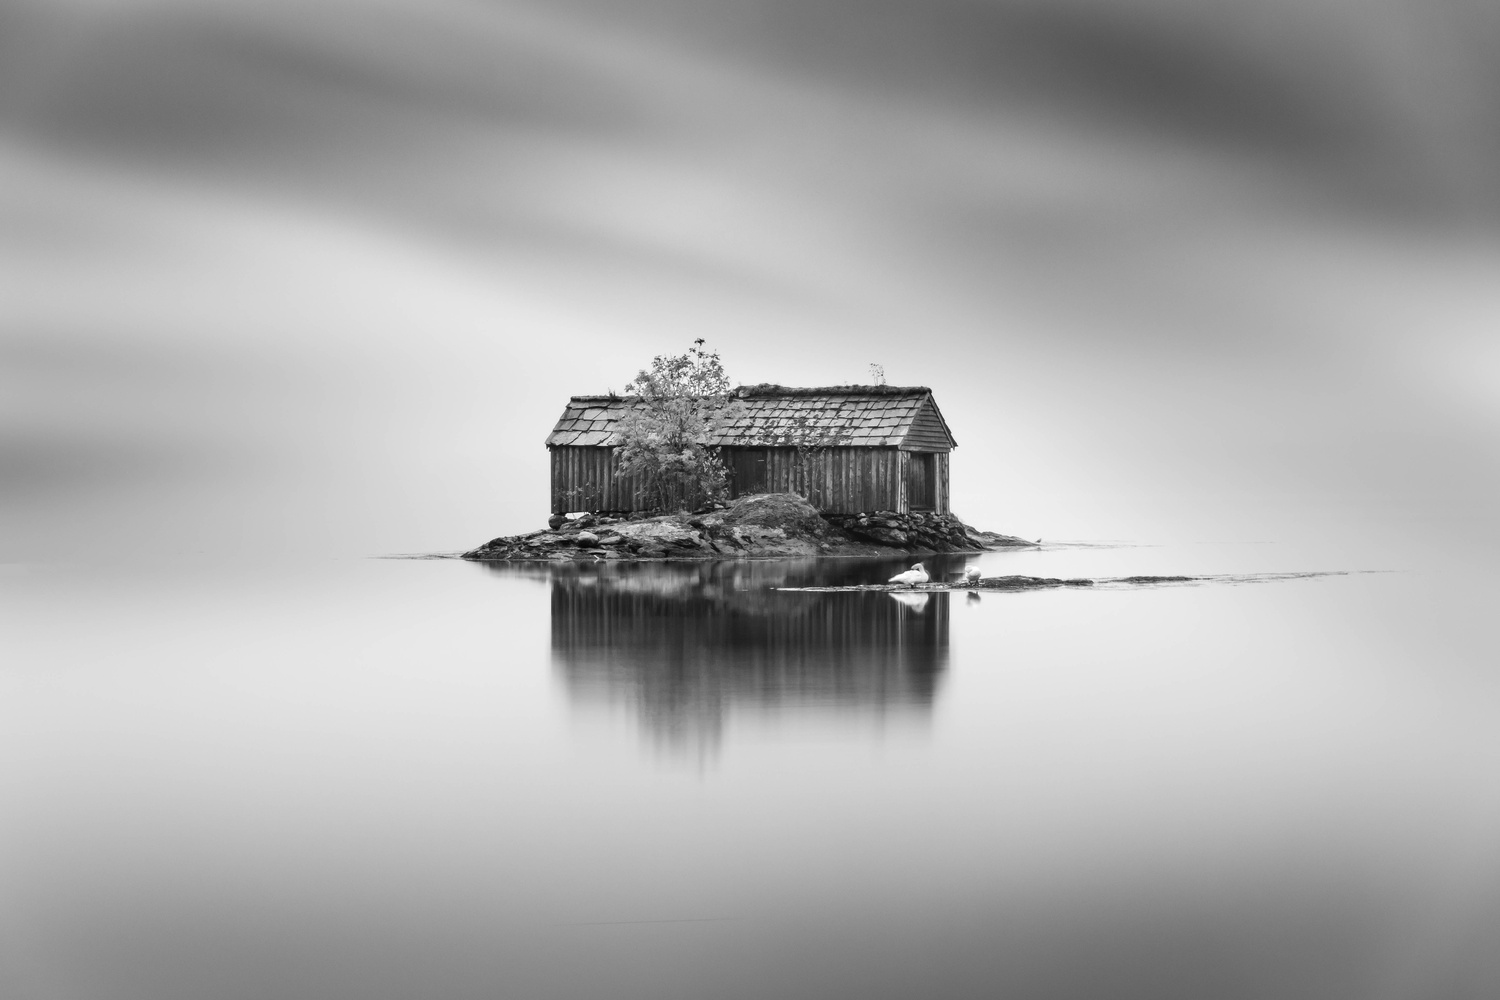 Shed in the lake by Sem Wijnhoven